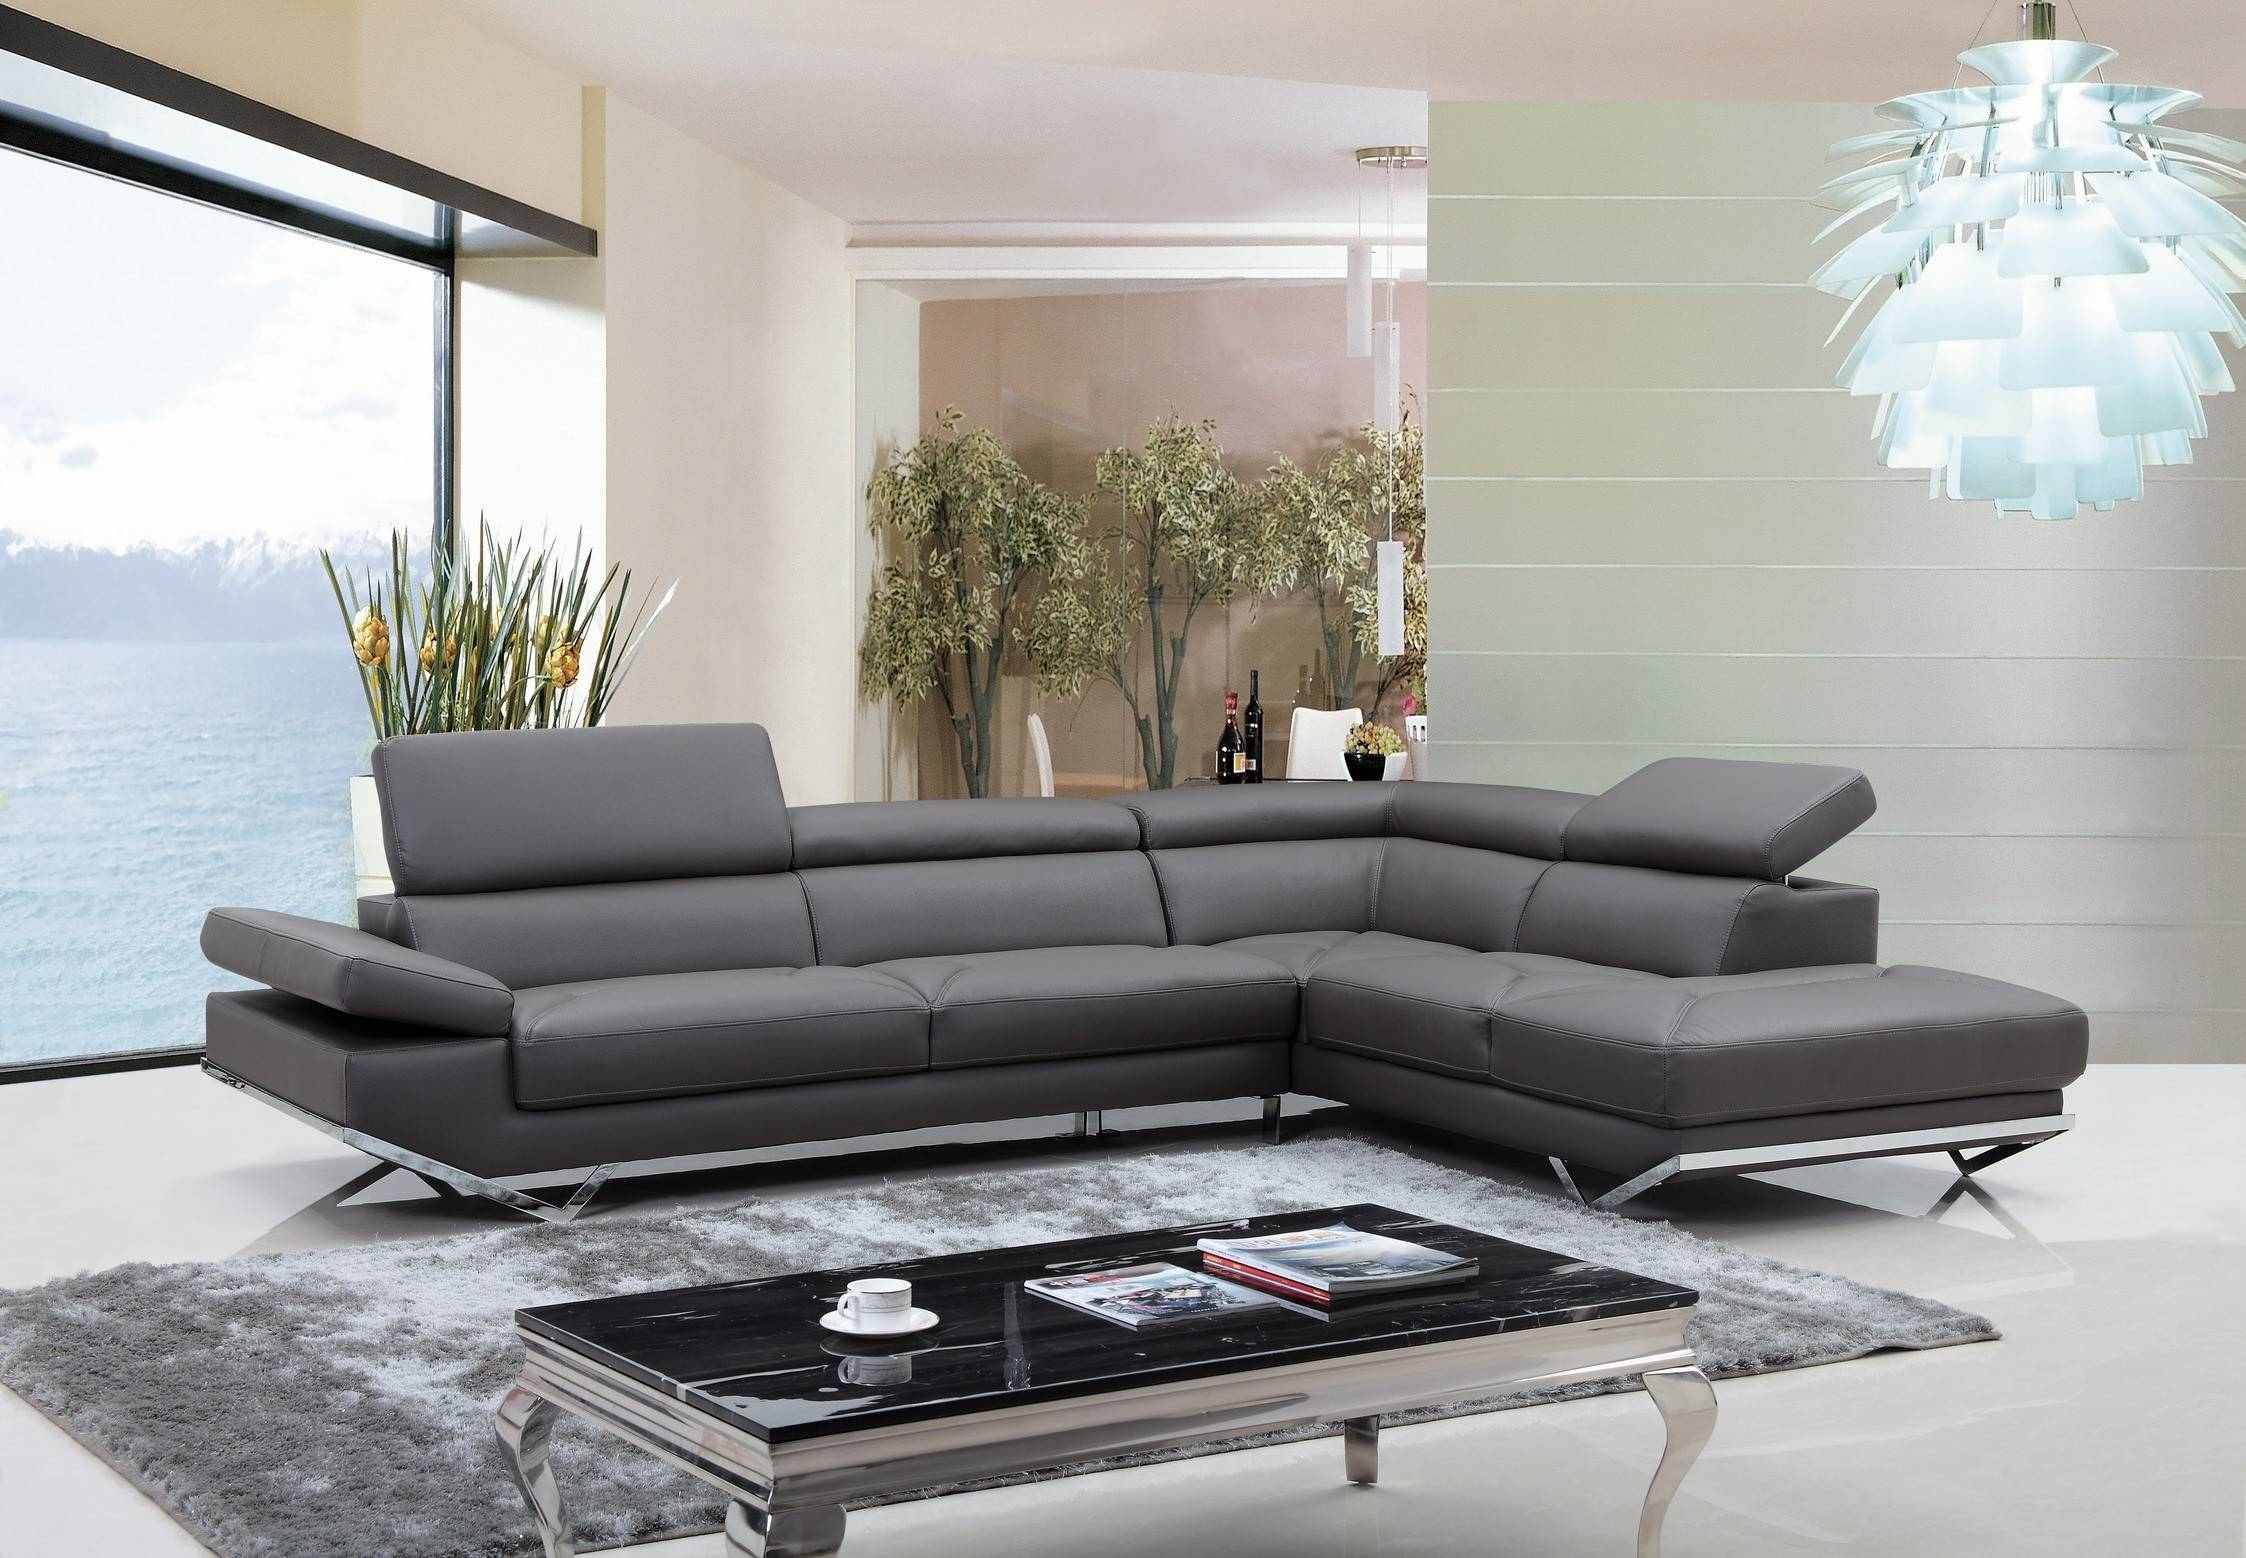 Light Grey Leather Sectional Sofa | Tehranmix Decoration with regard to Gray Leather Sectional Sofas (Image 22 of 30)